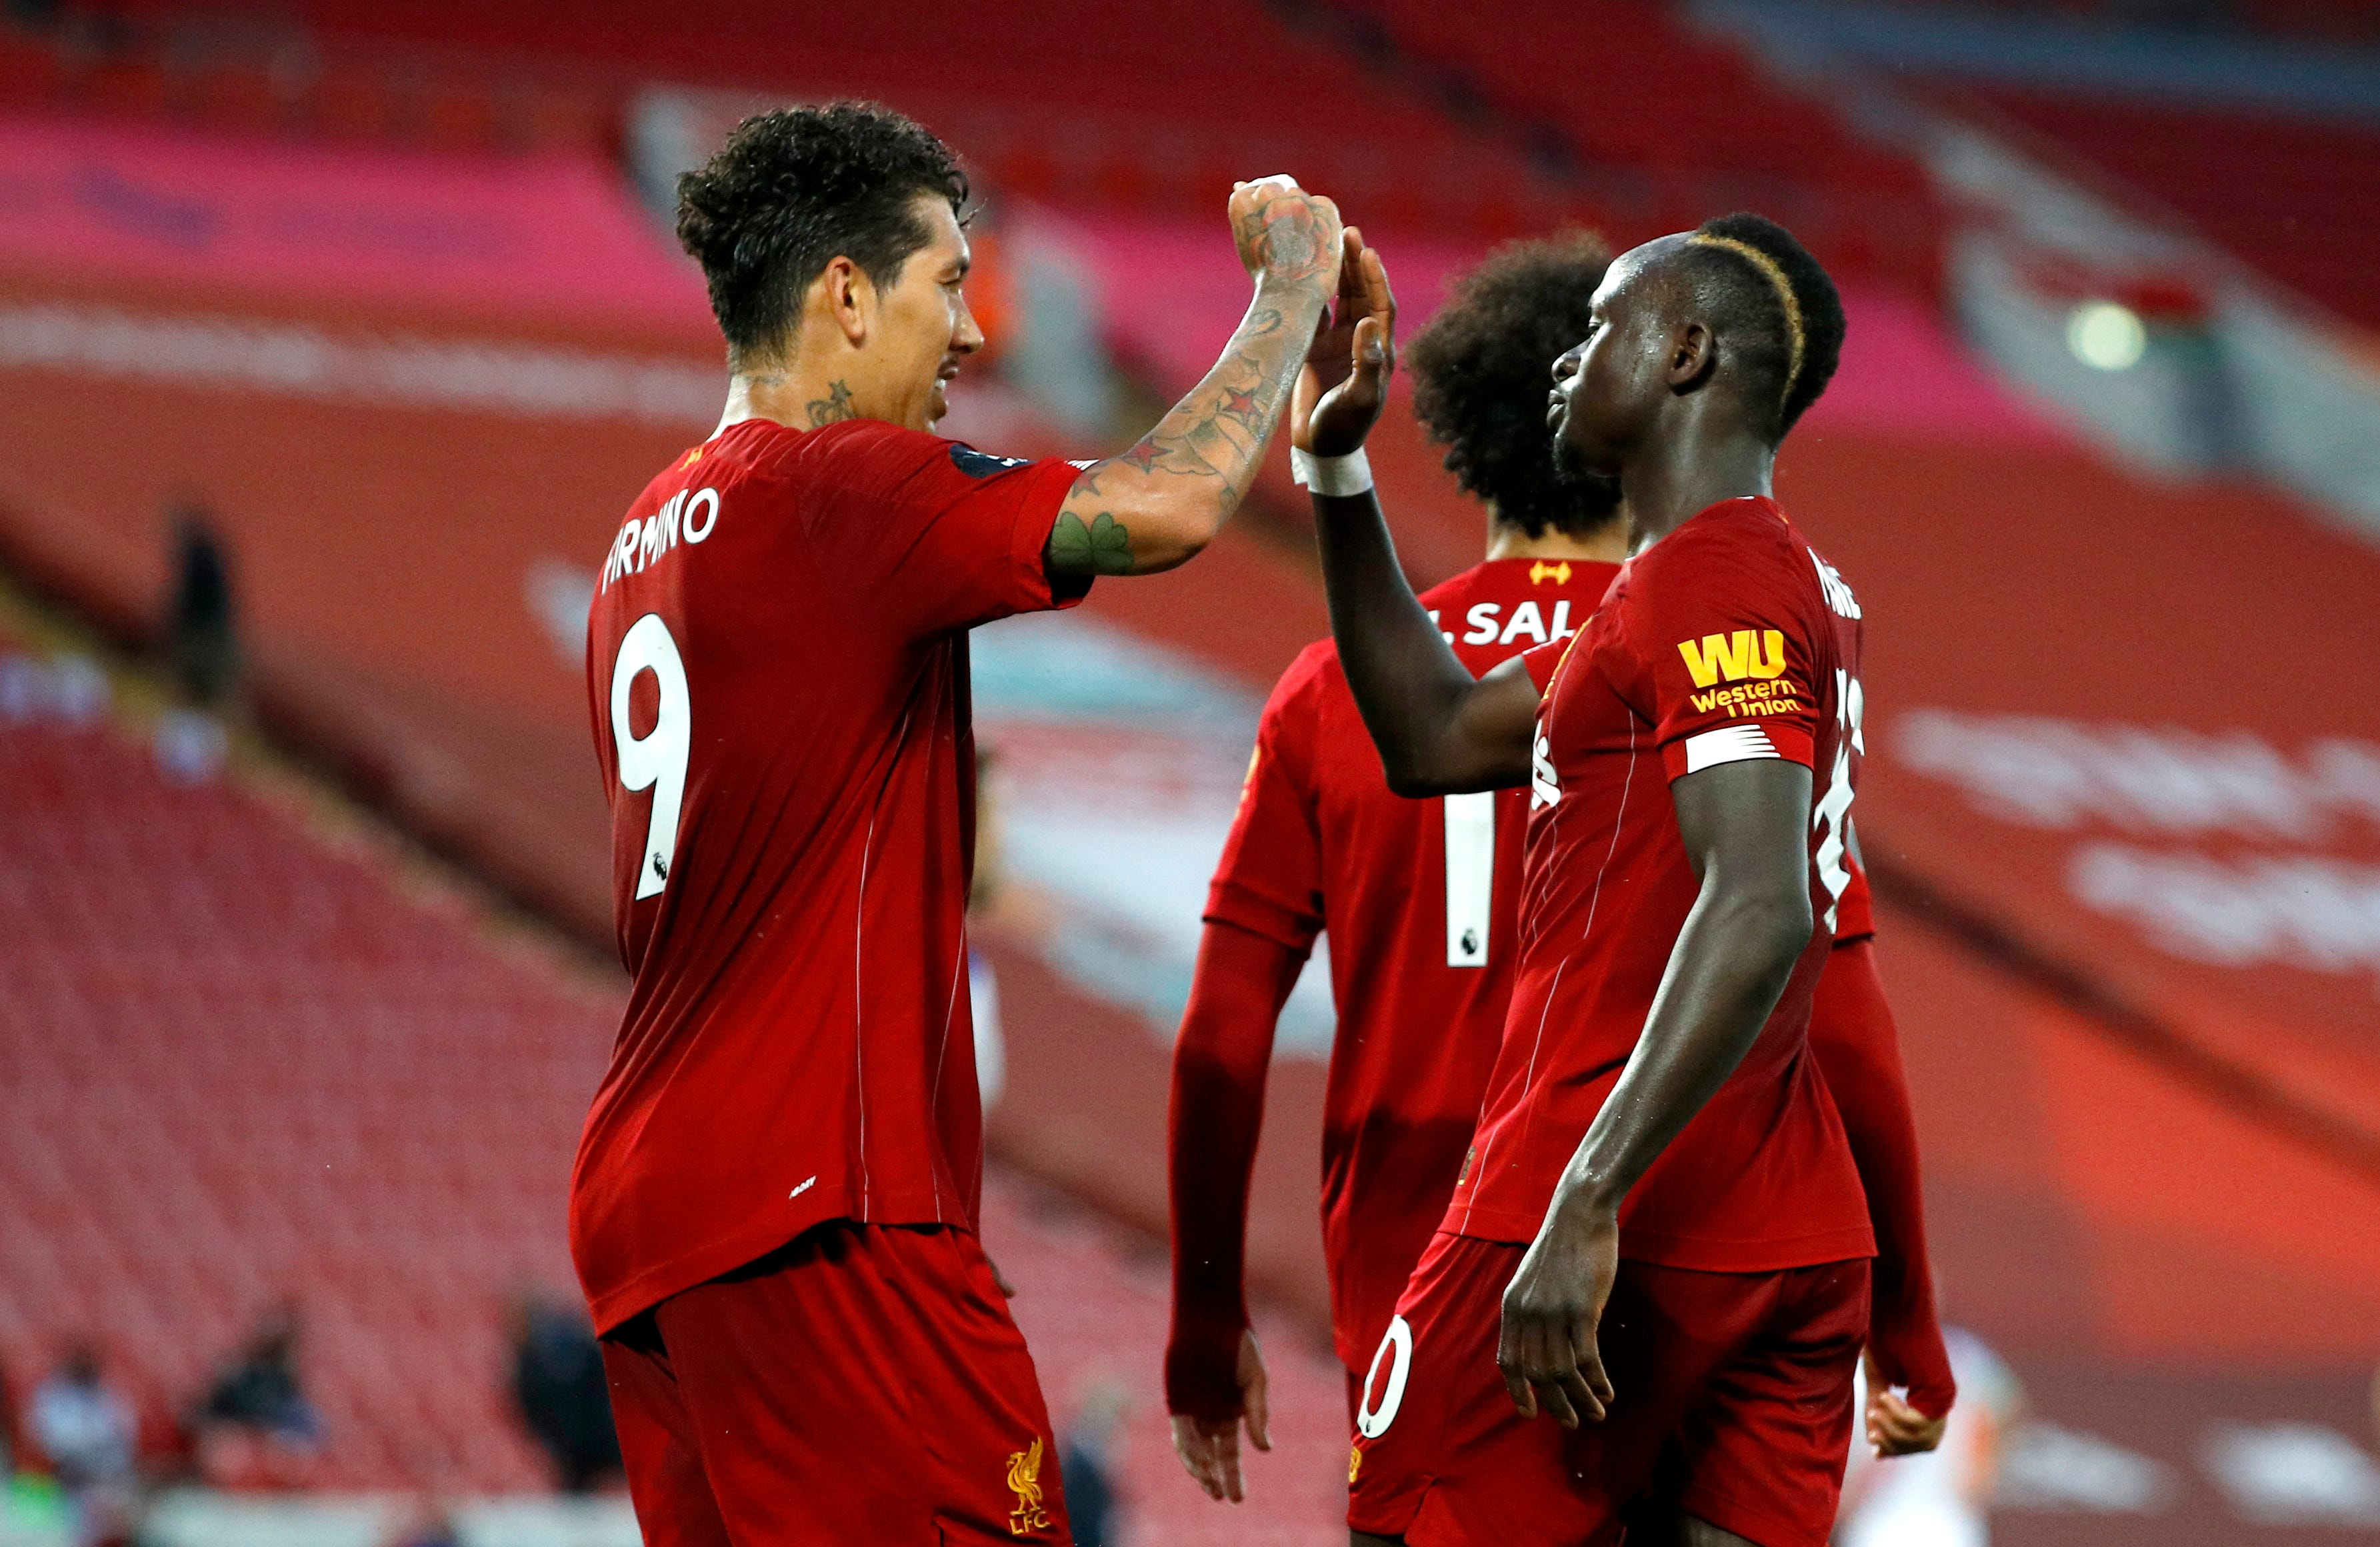 Liverpool clinches English Premier League, club's first domestic title since 1990